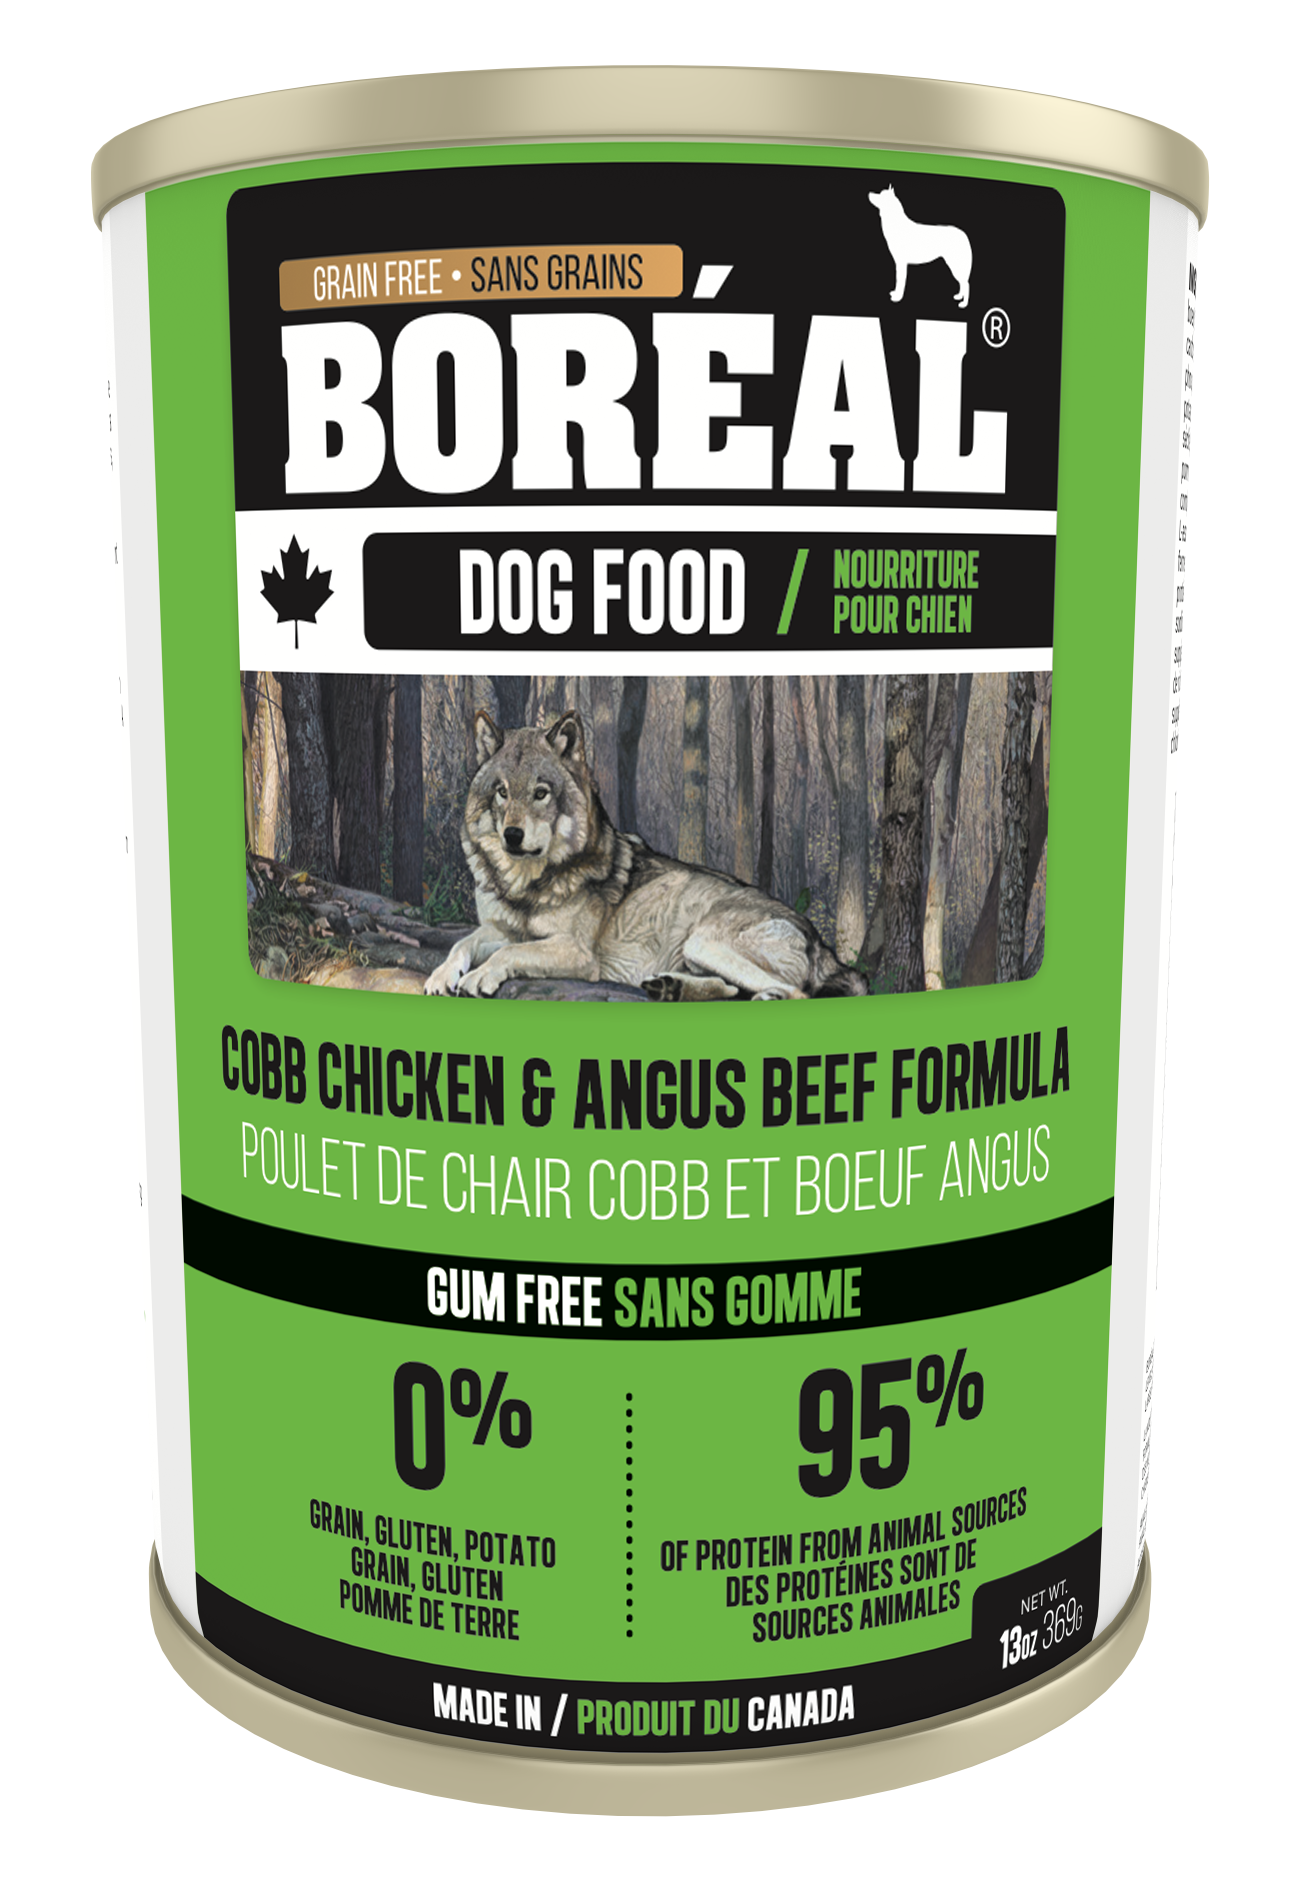 Canadian Cobb Chicken and Angus Beef